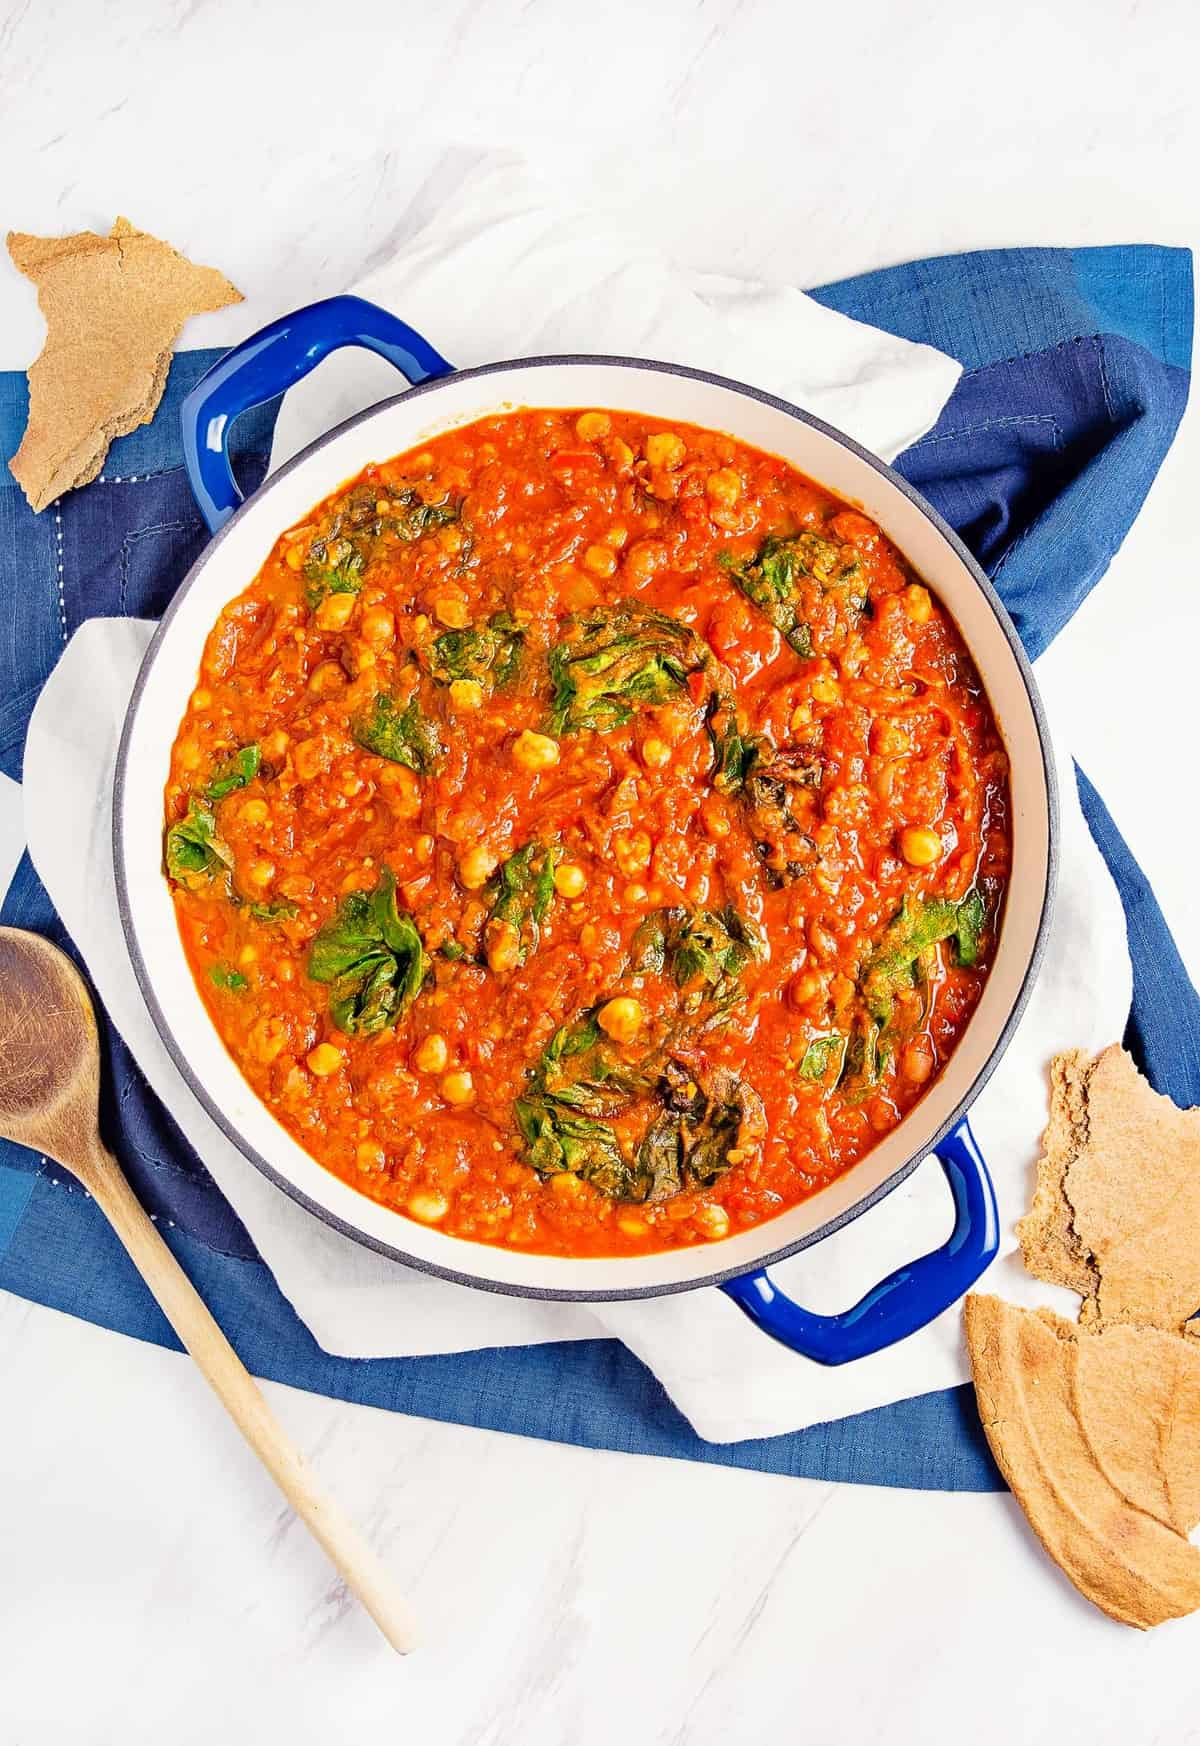 Spicy Berbere Bean Soup, plant based, vegan, vegetarian, whole food plant based, gluten free, recipe, wfpb, healthy, healthy vegan, oil free, no refined sugar, no oil, refined sugar free, dairy free, dinner party, entertaining, soup